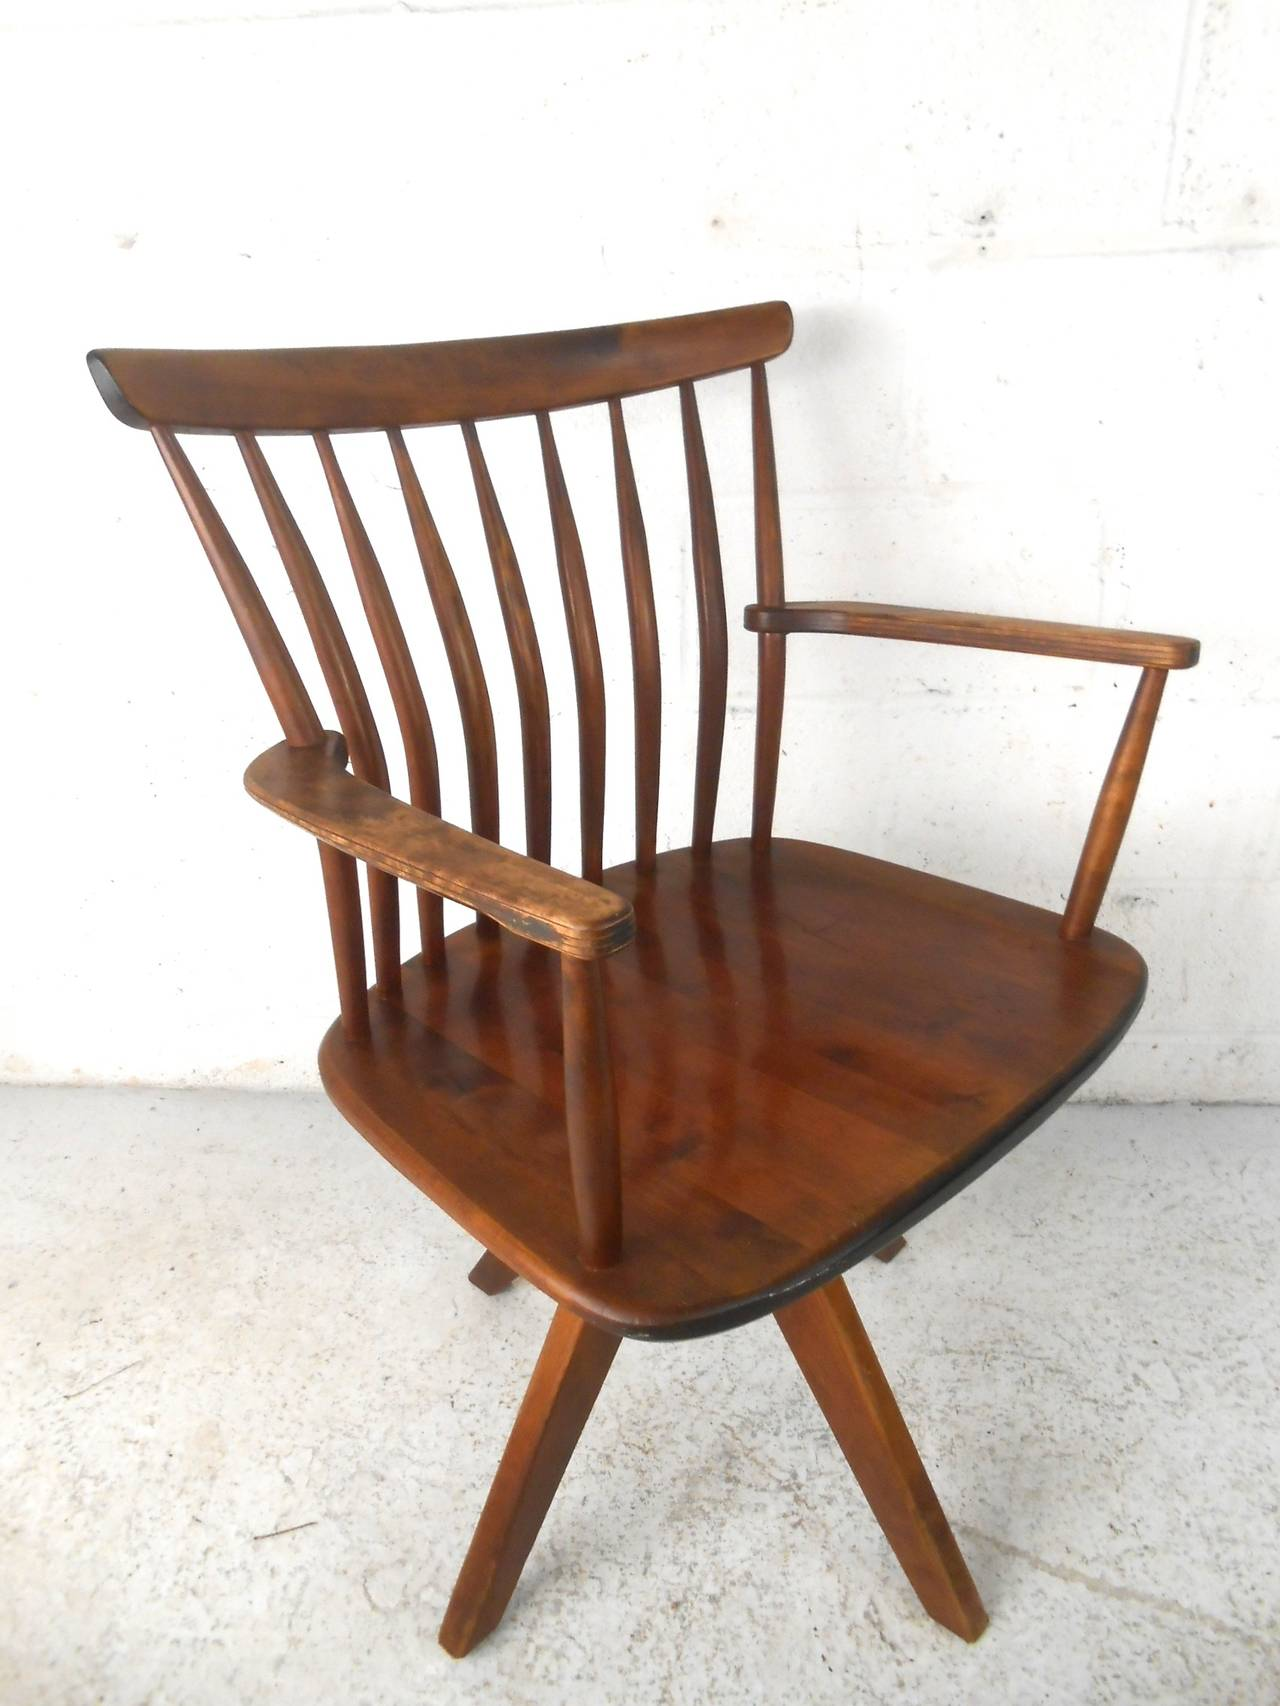 teak wood revolving chair office chairs big and tall unique mid century modern spoke back swivel desk